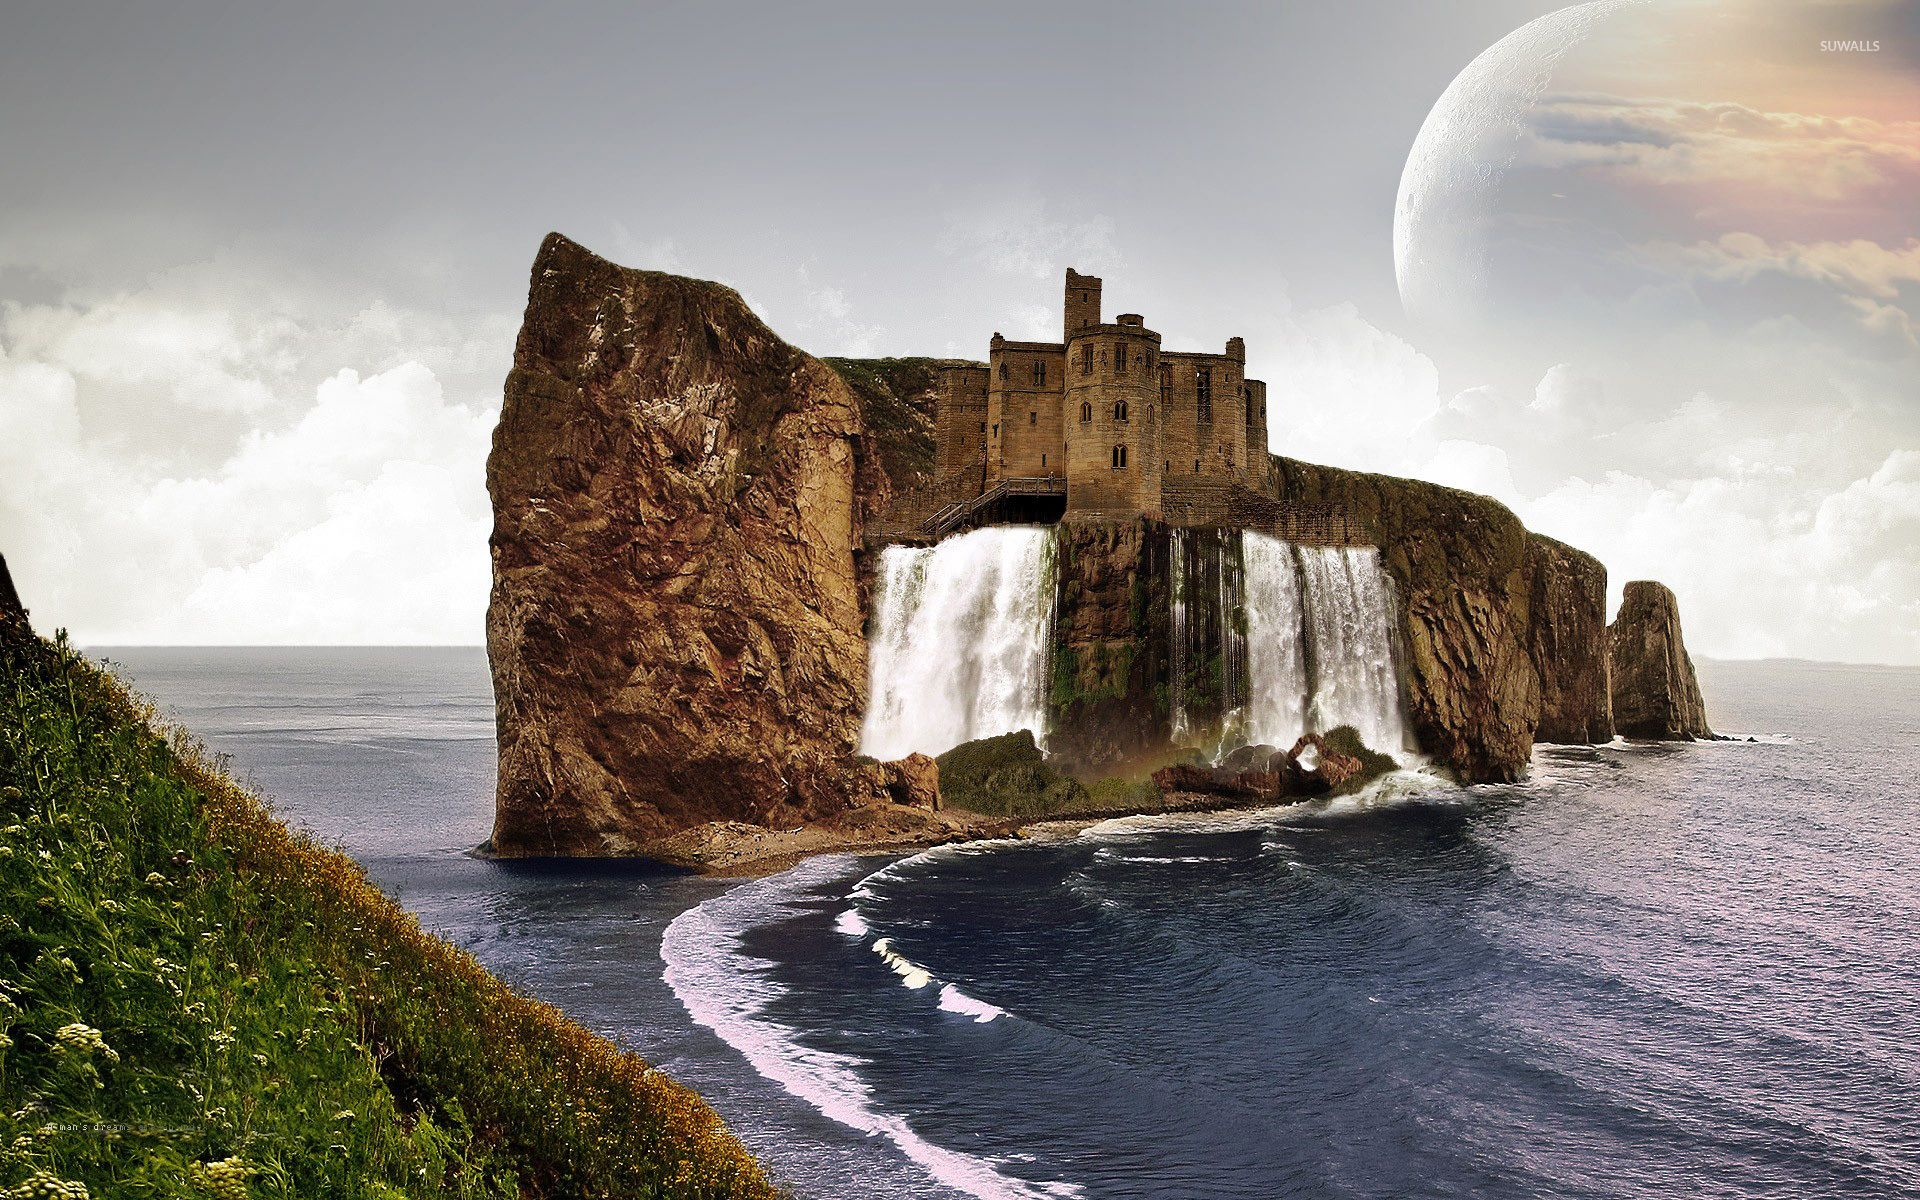 King bertils castle prodigyprince yafantasybooks yafiction free wallpapers castle at stone with waterfall wallpaper voltagebd Choice Image